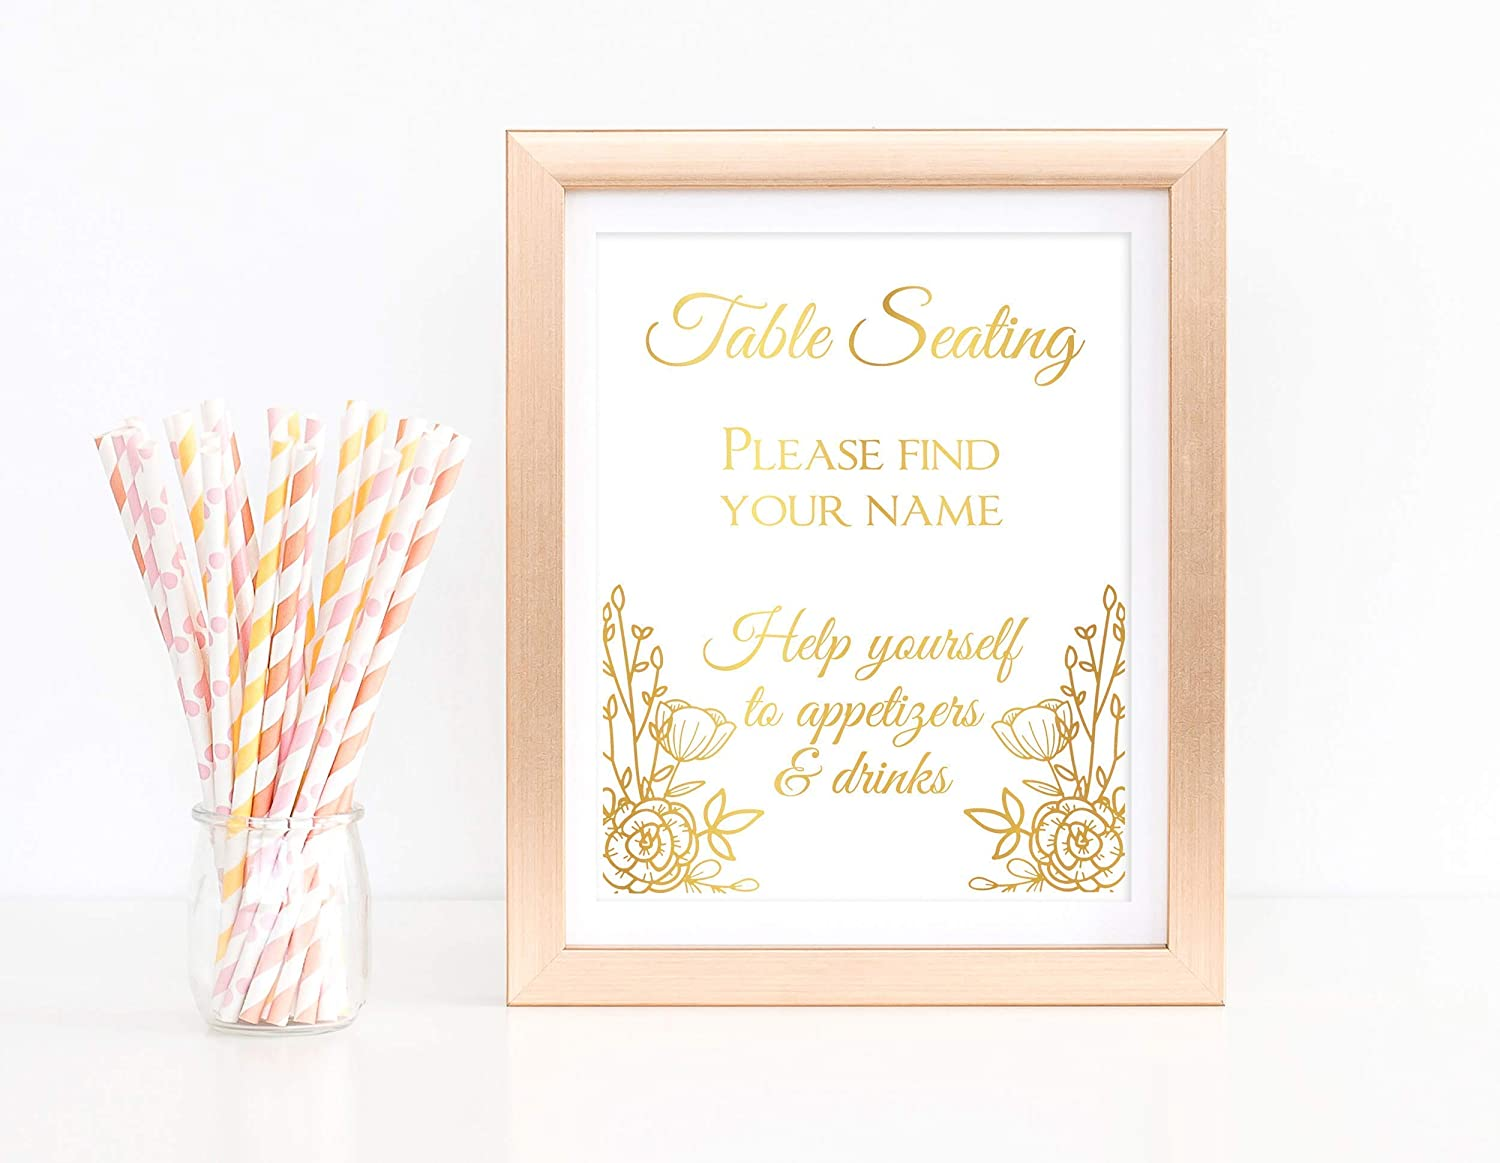 Unframed Cardstock with Real Foil Find Your Seat Wedding Sign Gold Foil Appitizers and Drinks Sign Reception Seating Decorations Party Table Botanical Flower Design